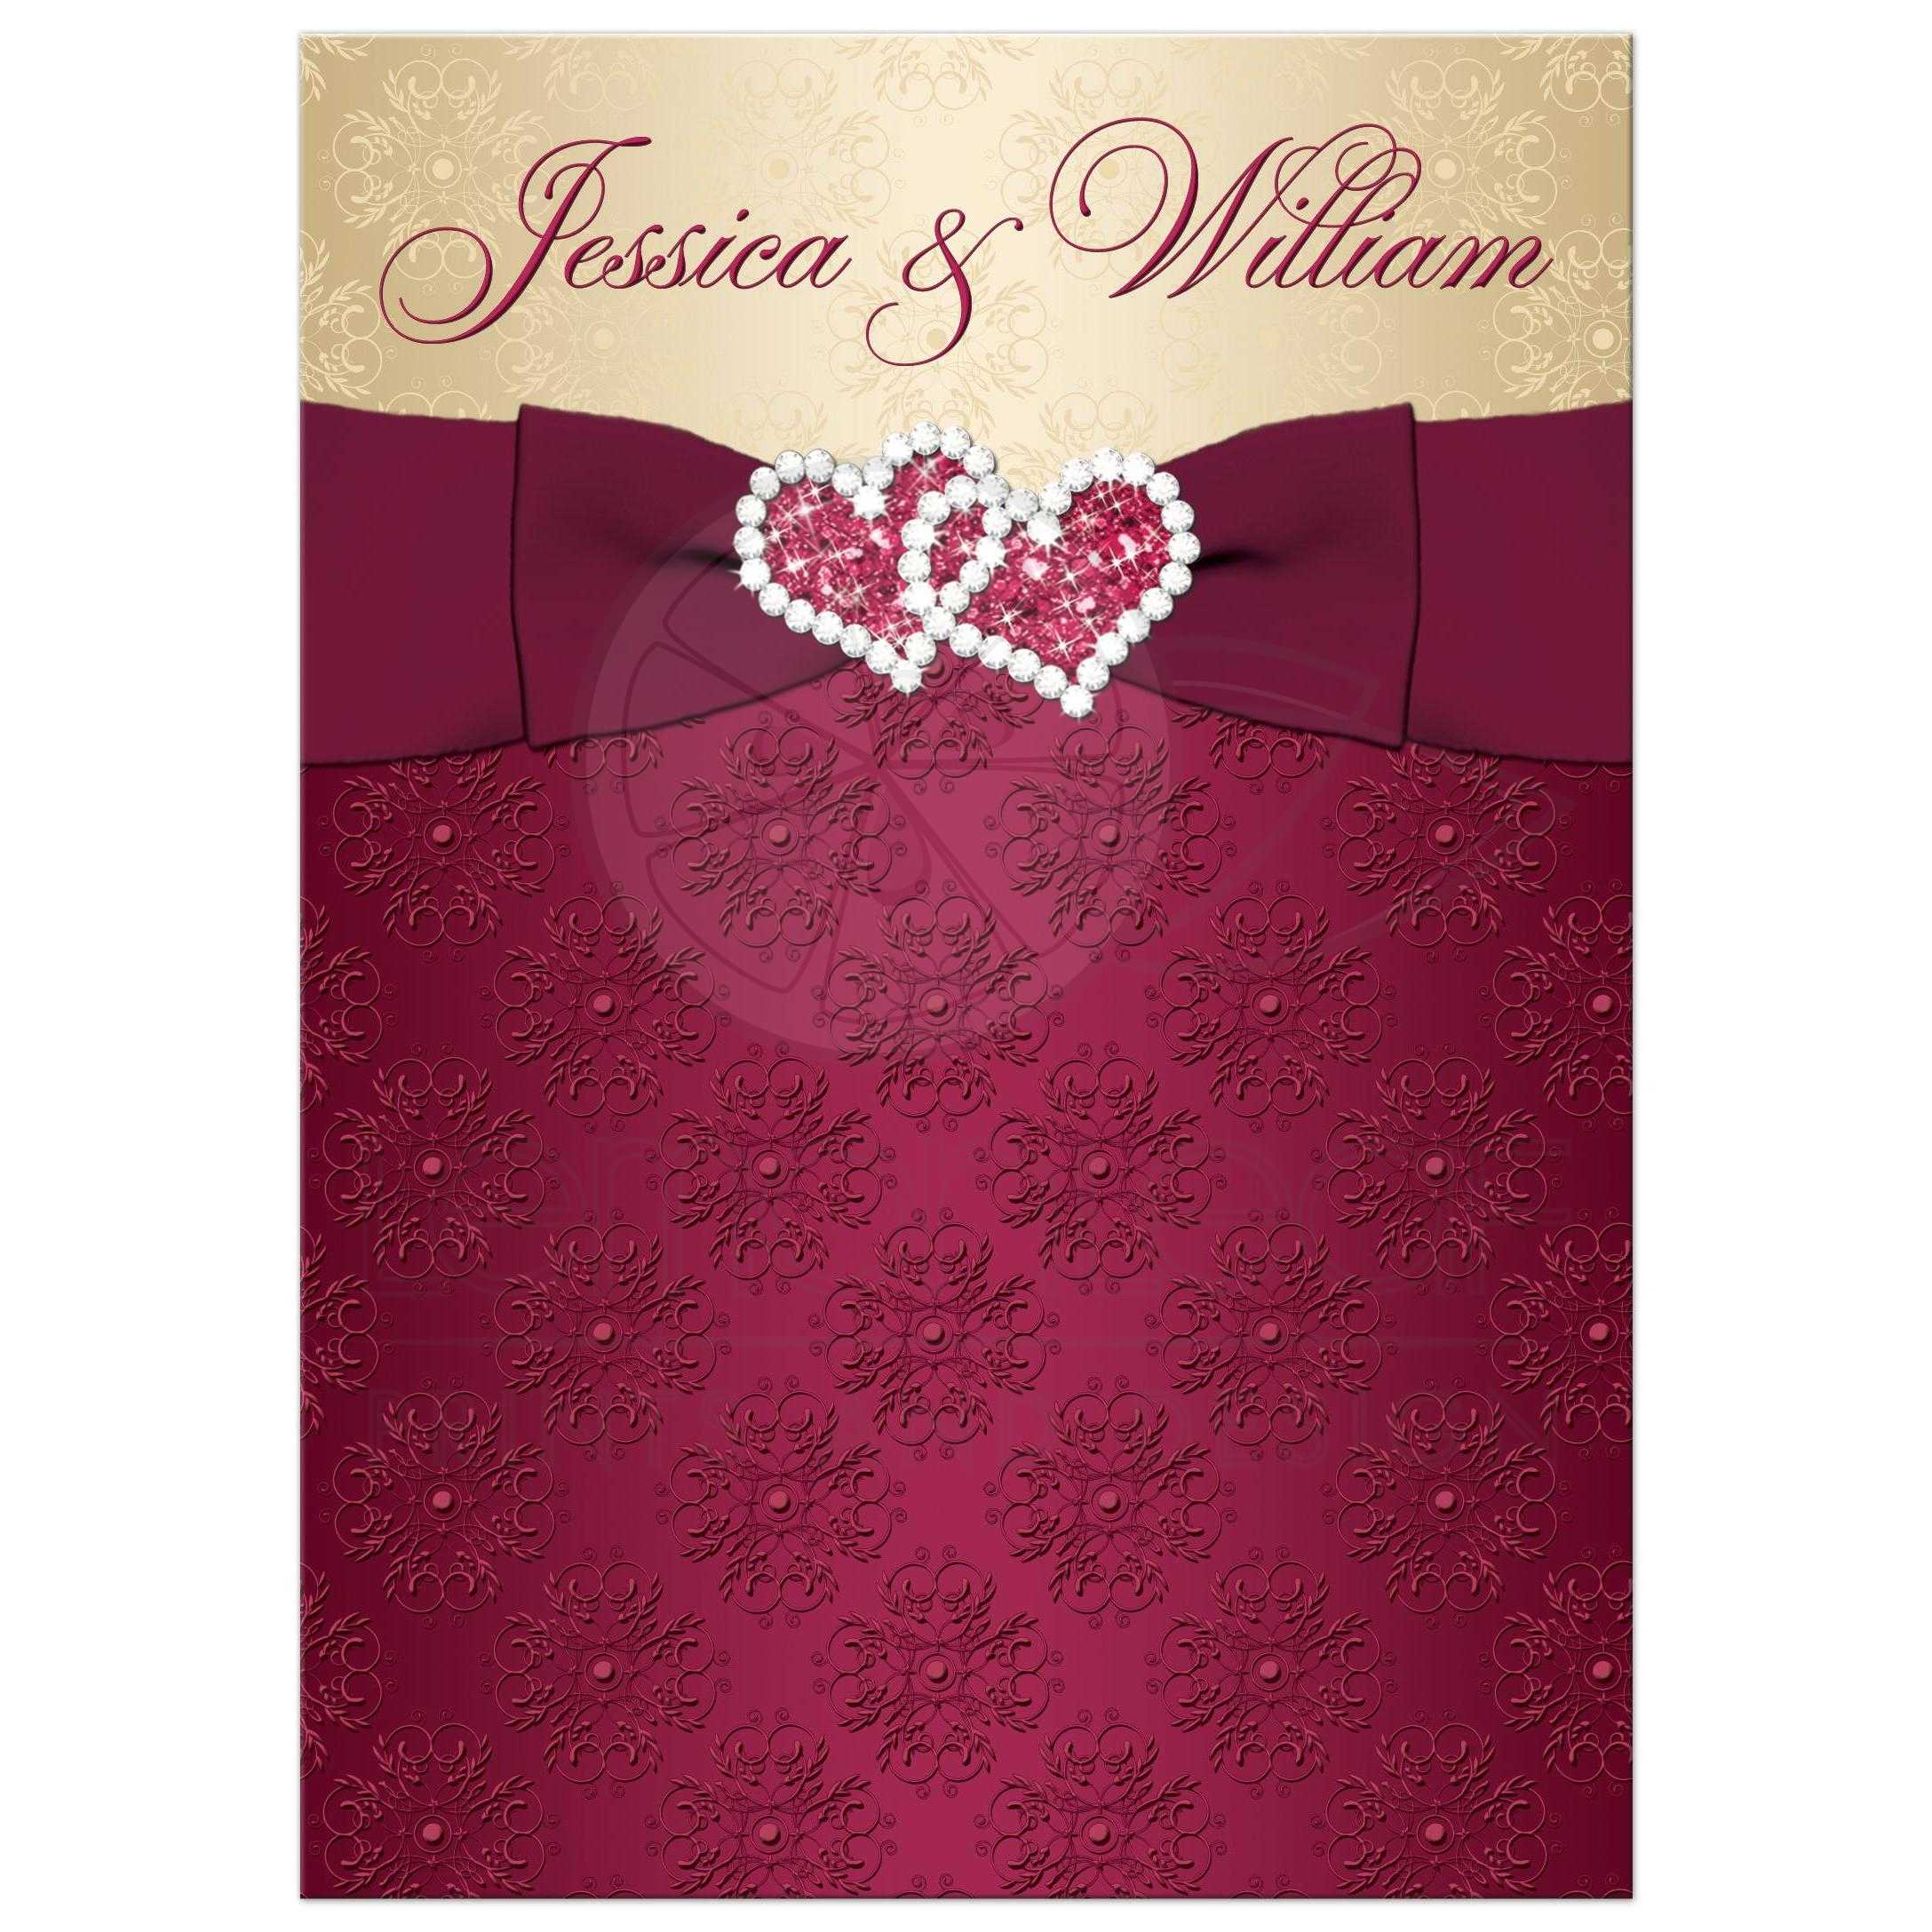 Wedding invitation burgundy gold damask printed ribbon joined great burgundy and gold damask and scrolls wedding invitations with ribbon bow and jeweled joined stopboris Image collections